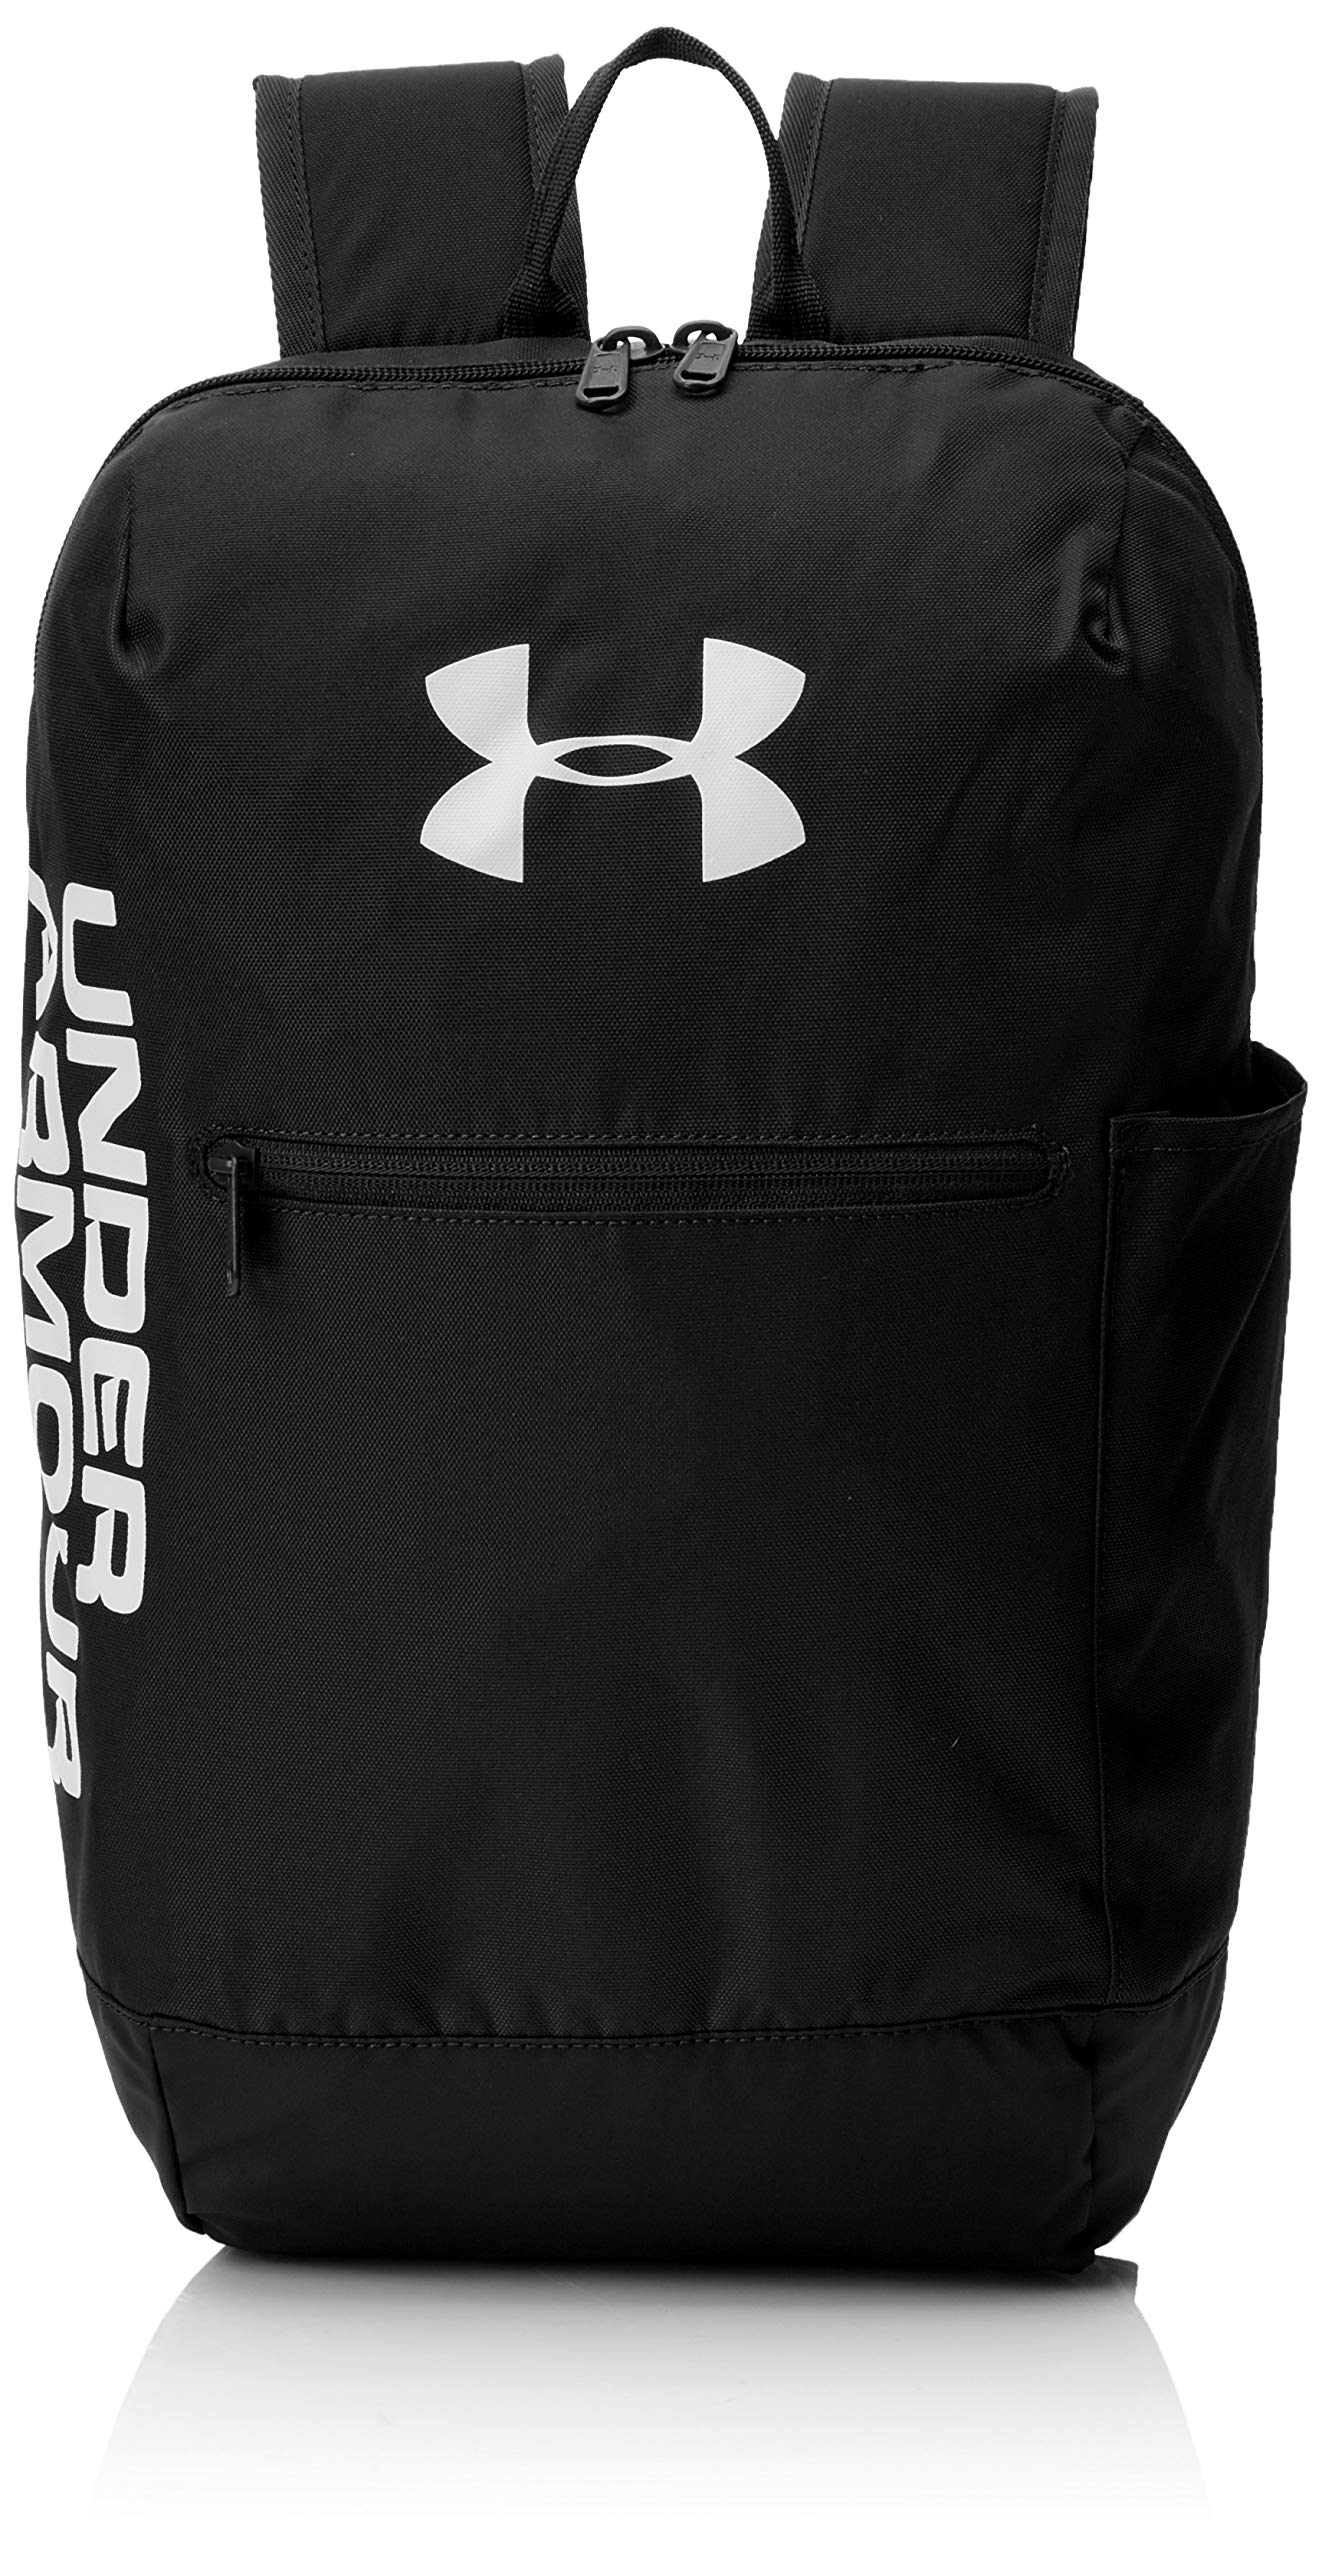 81rQR2ICGXL - Under Armour Patterson Backpack, Mochila Unisex